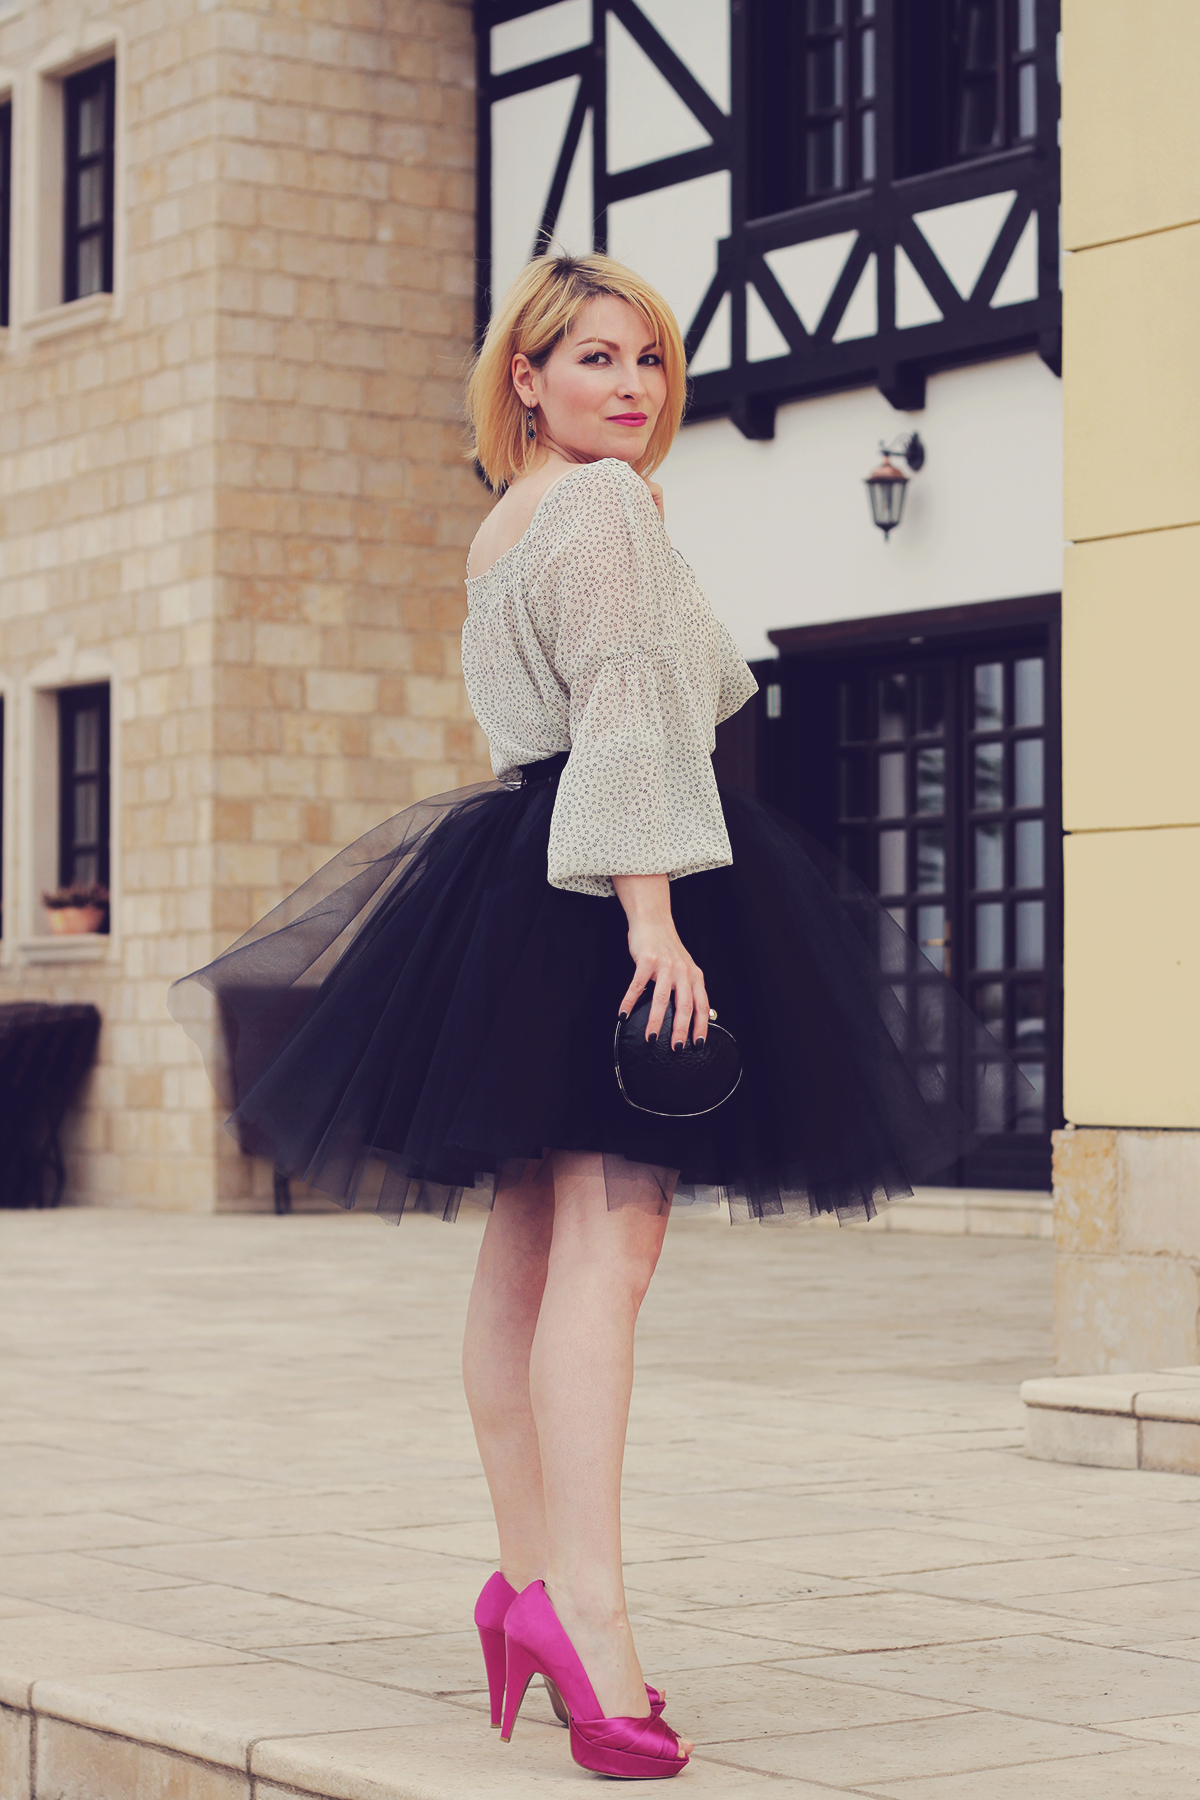 the tulle skirt and pink pumps